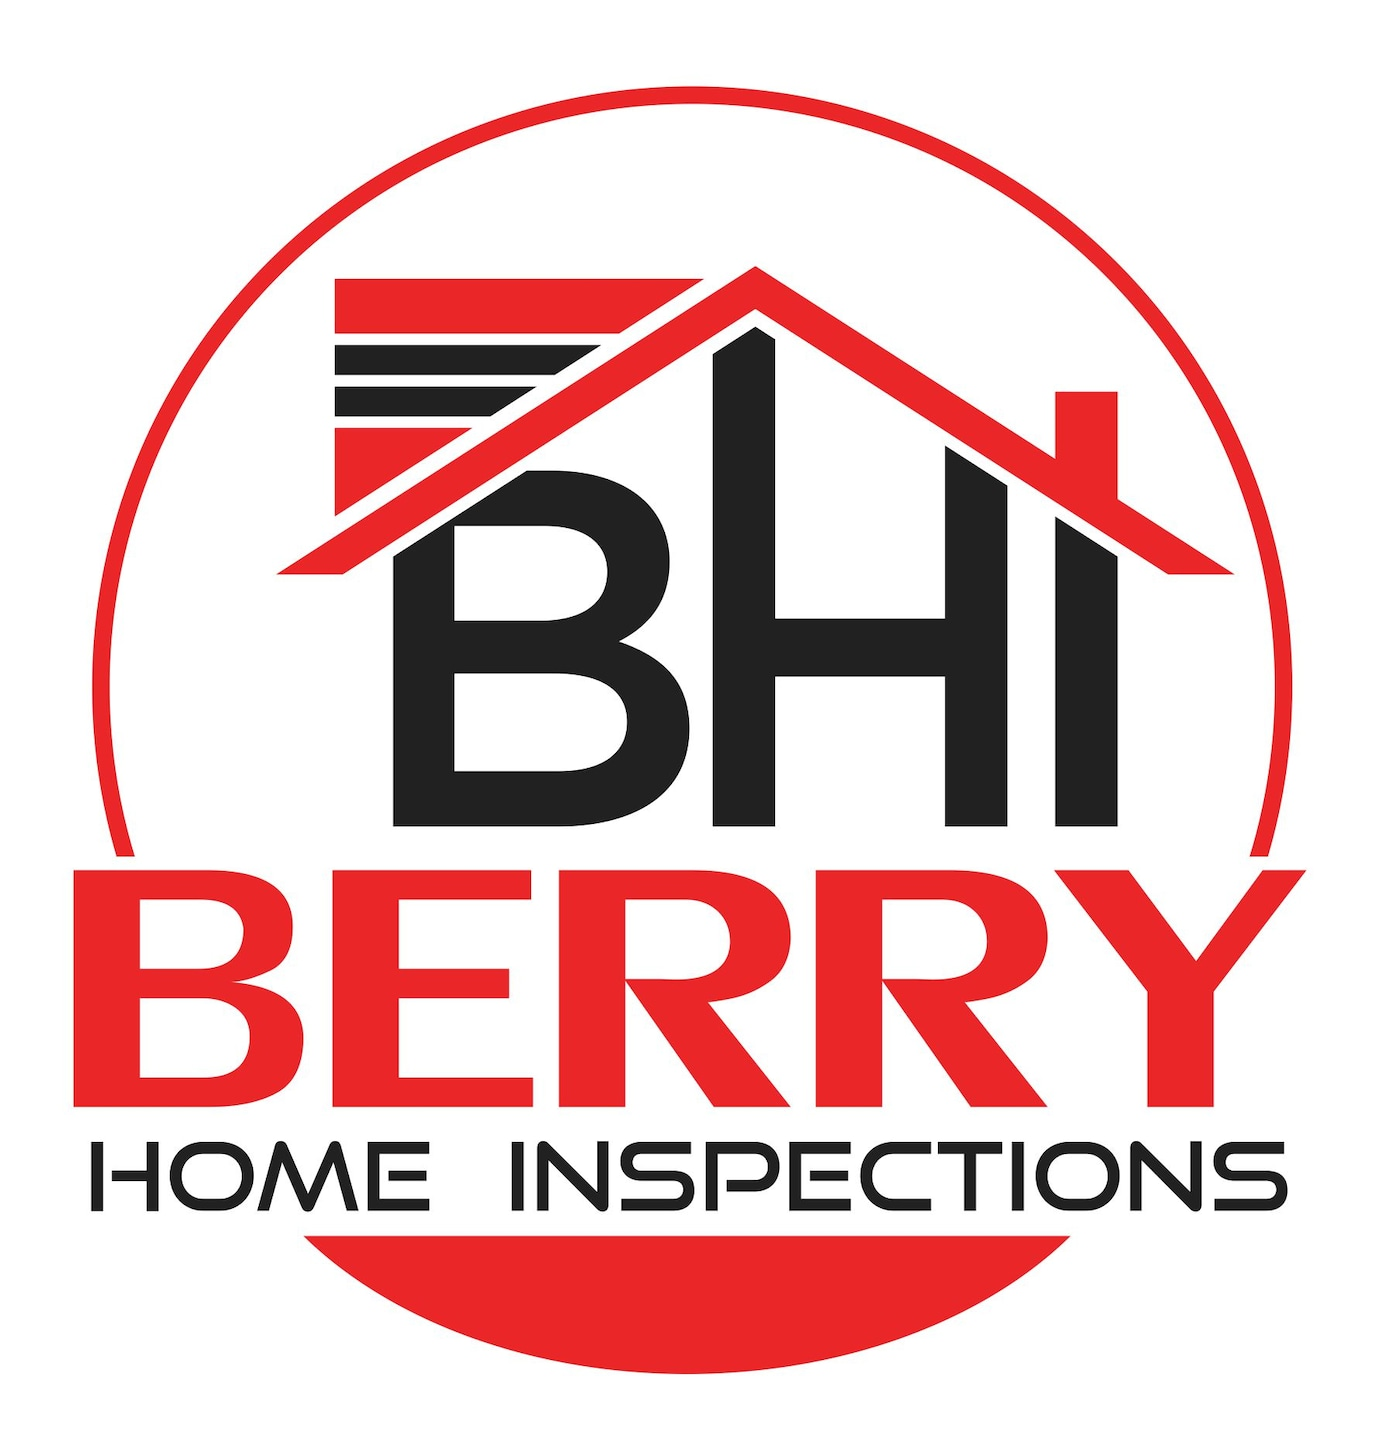 Berry Home Inspections, LLC